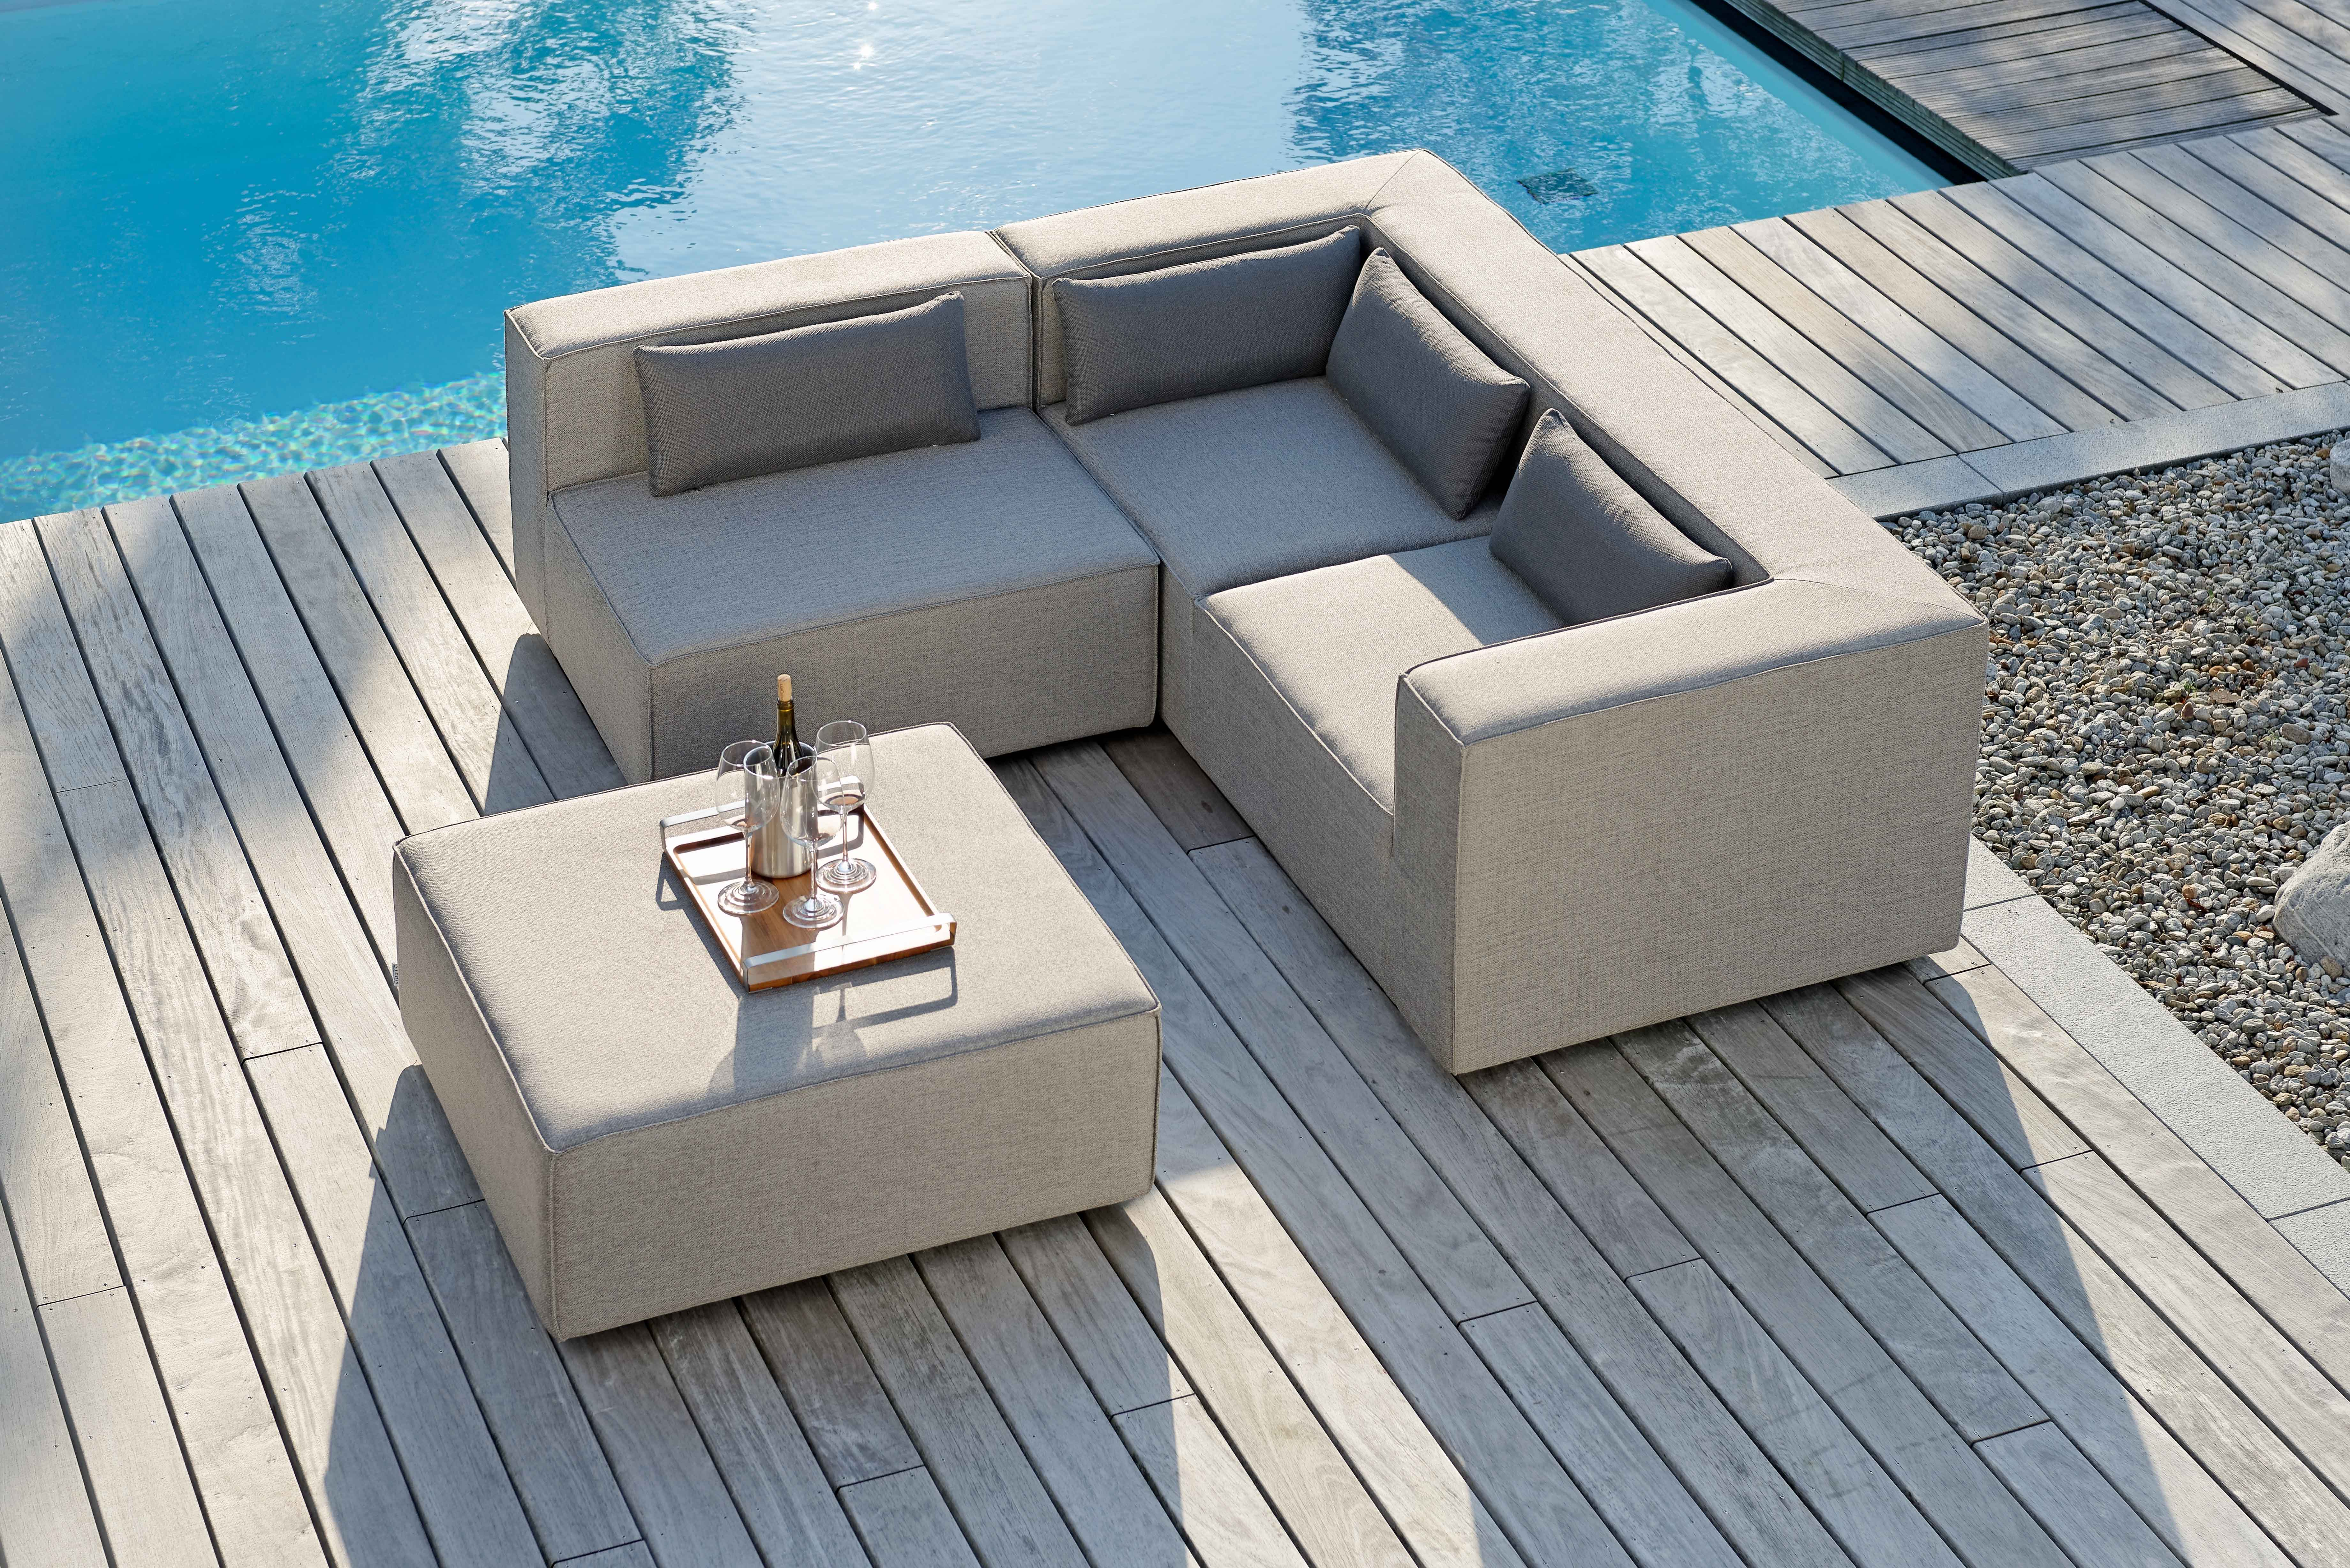 Charisma Sectional Sofa Luxury Sunbrella Outdoor Furniture Residential  Contract Pool Patio 4